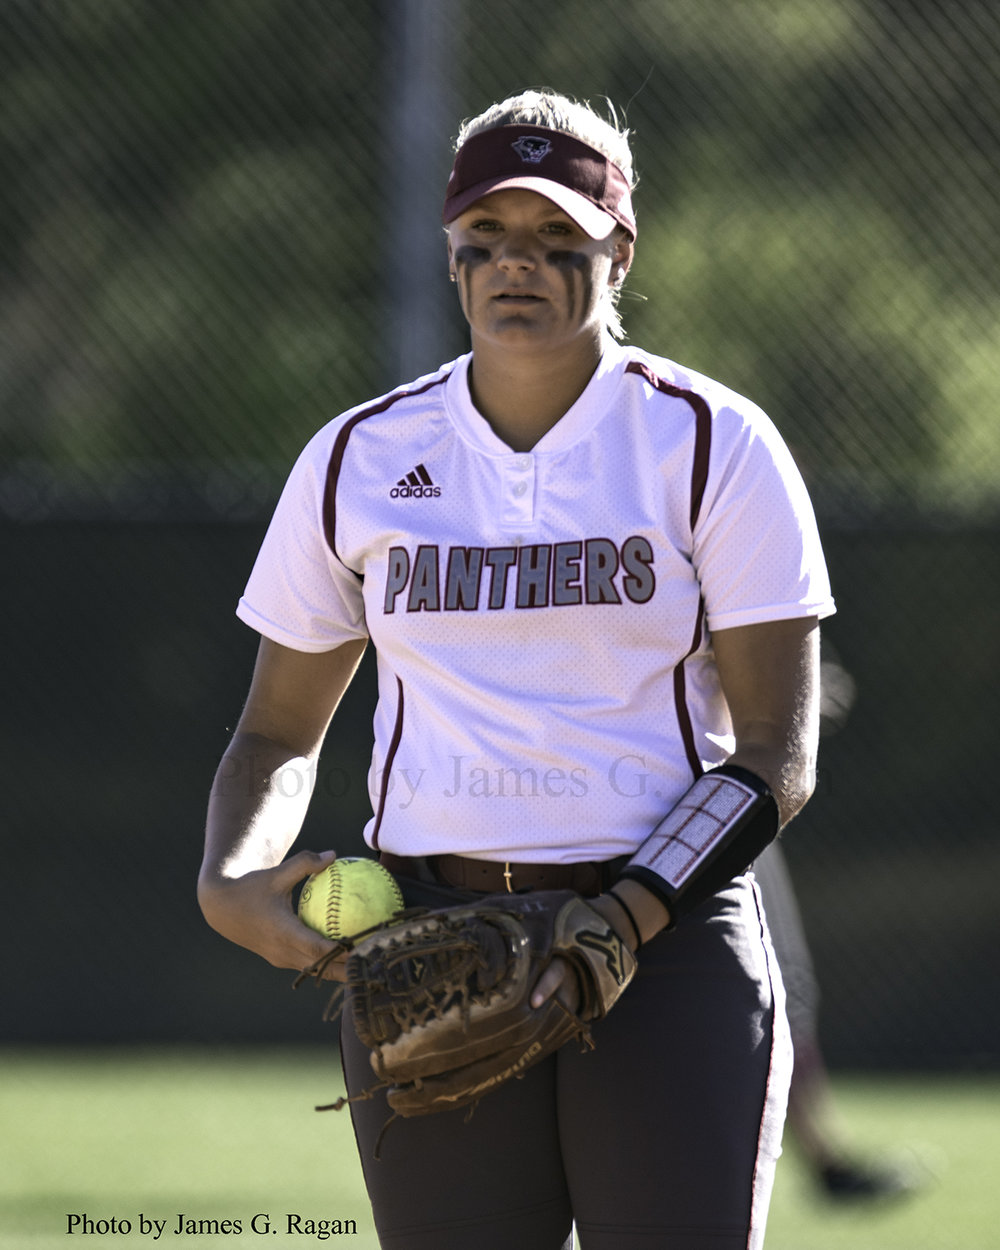 Florida Tech Takes Down Nova in Doubleheader Sweep